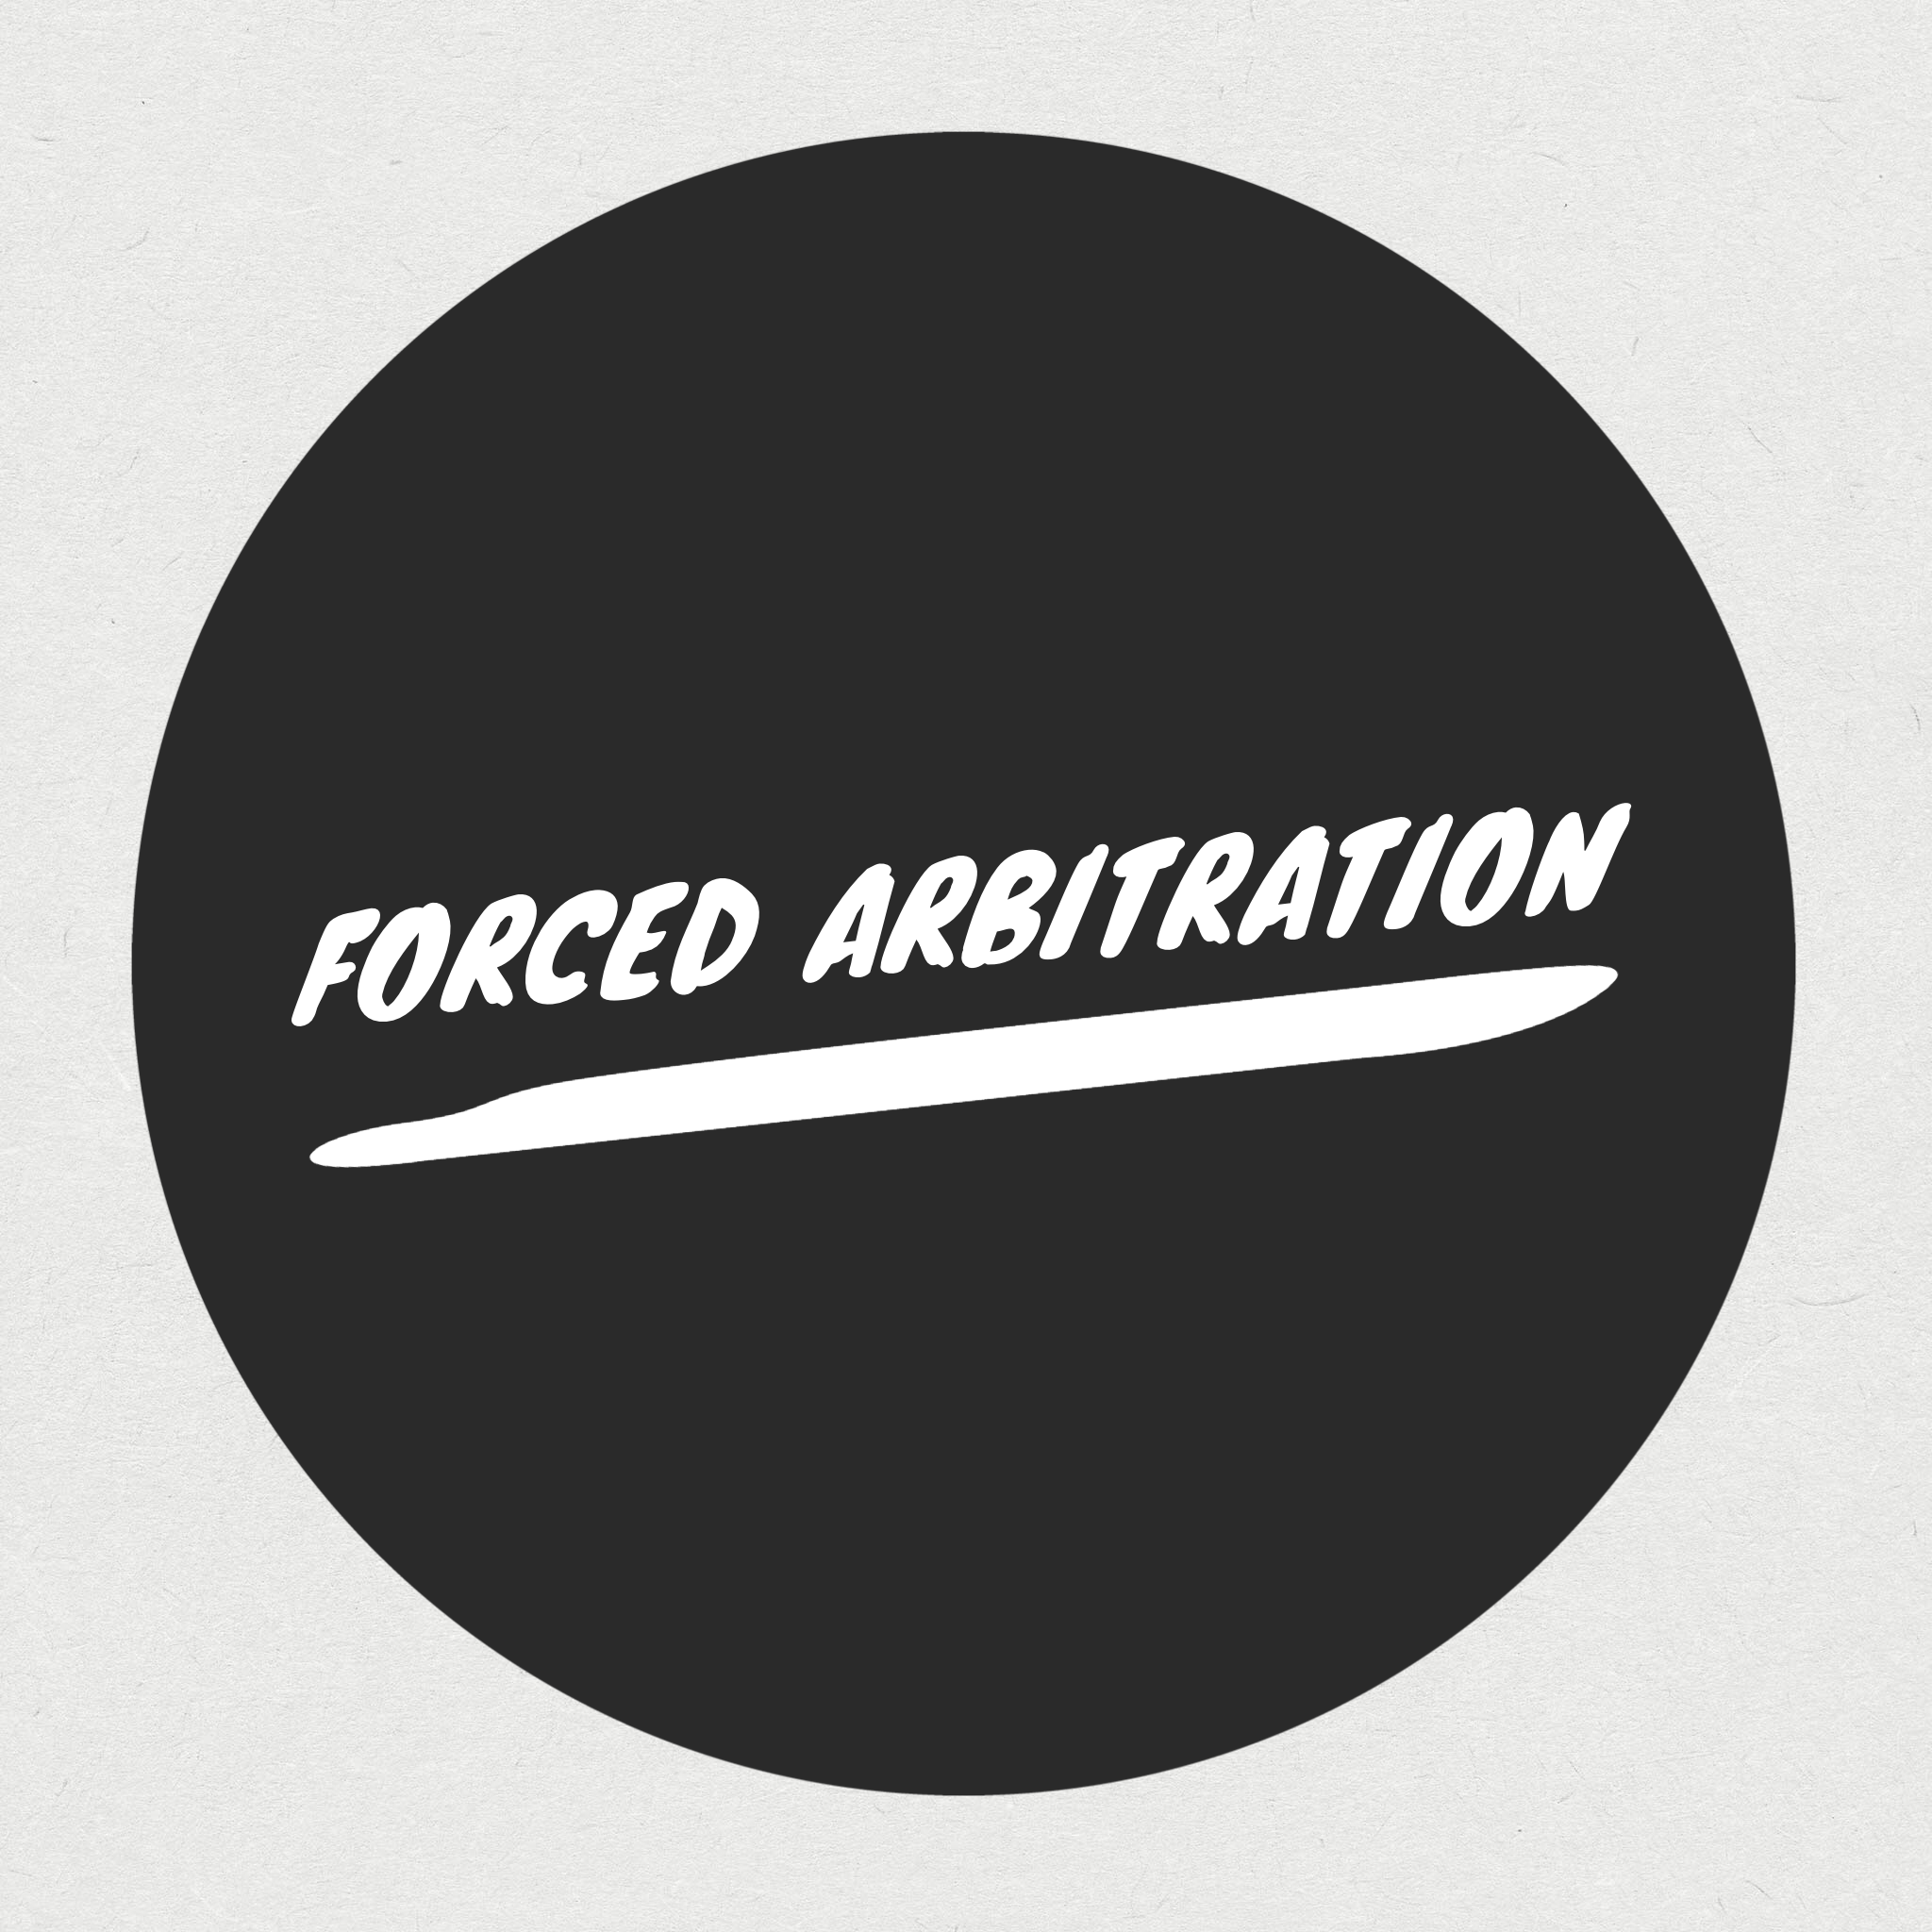 forced arbitration